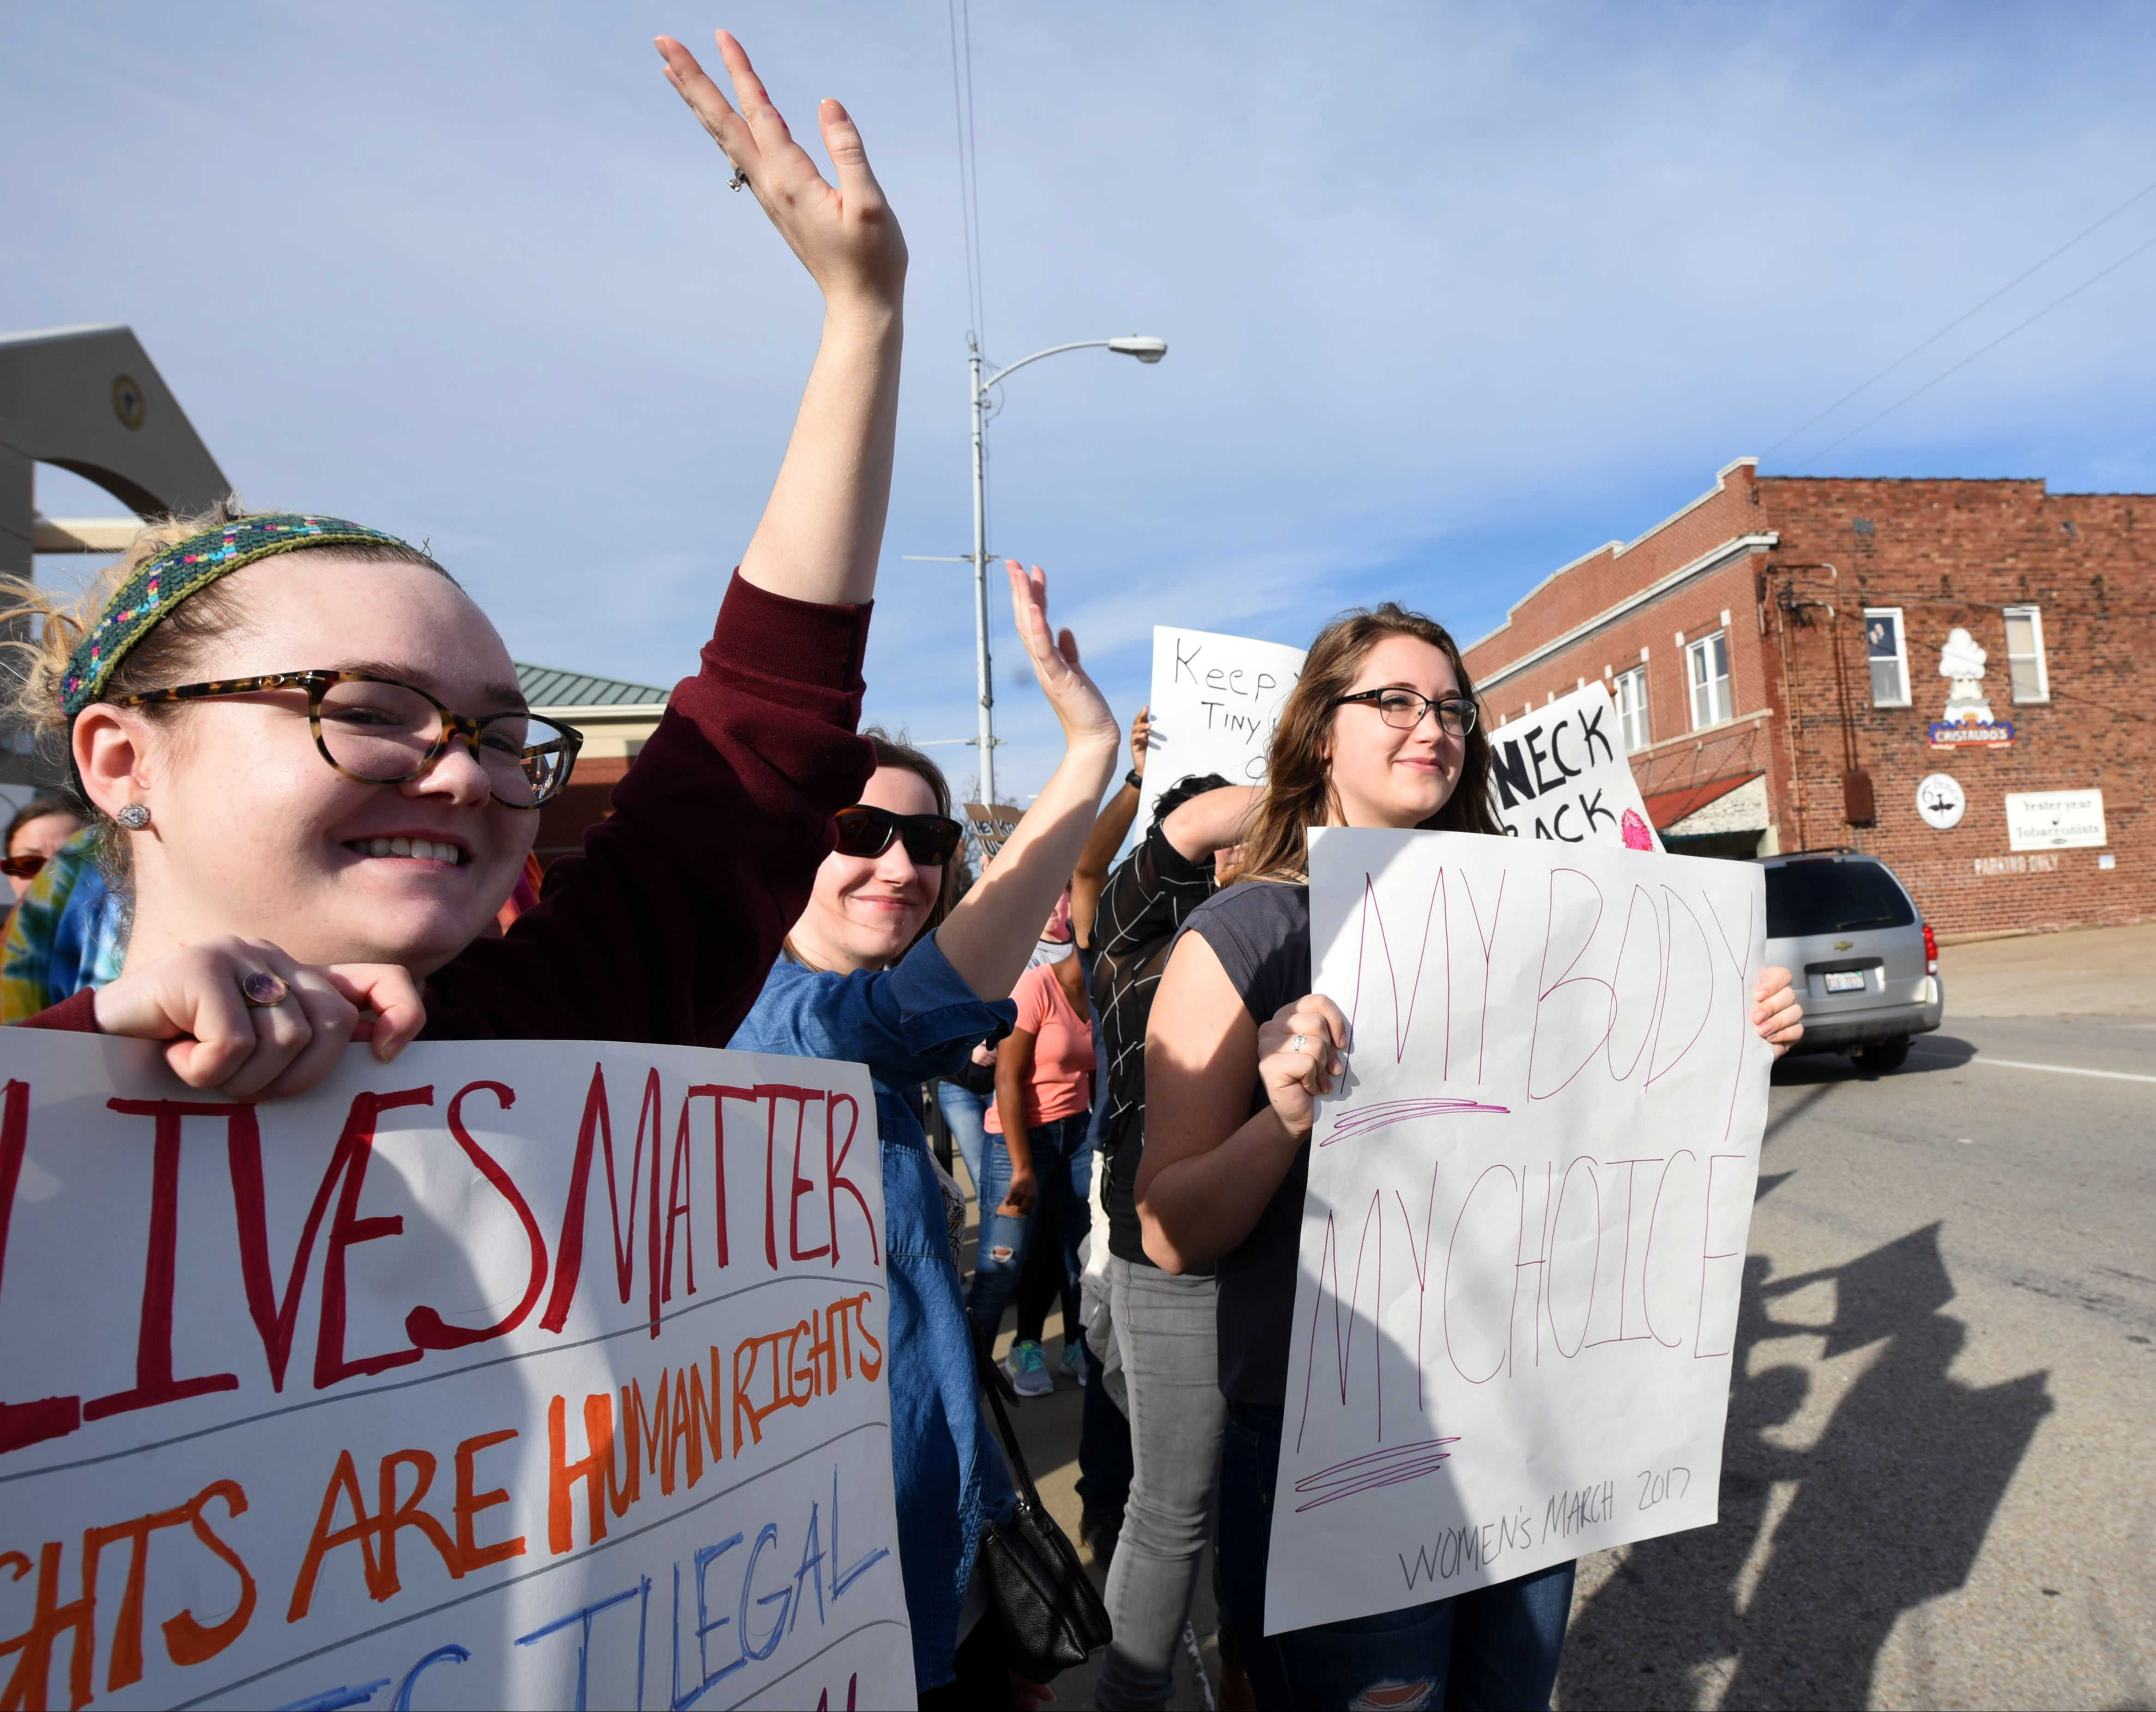 Demonstrators participating in the Southern Illinois Women's March wave to passing cars on Saturday, Jan. 21, 2017, in front of the Carbondale Civic Center. (Bill Lukitsch | @lukitsbill)